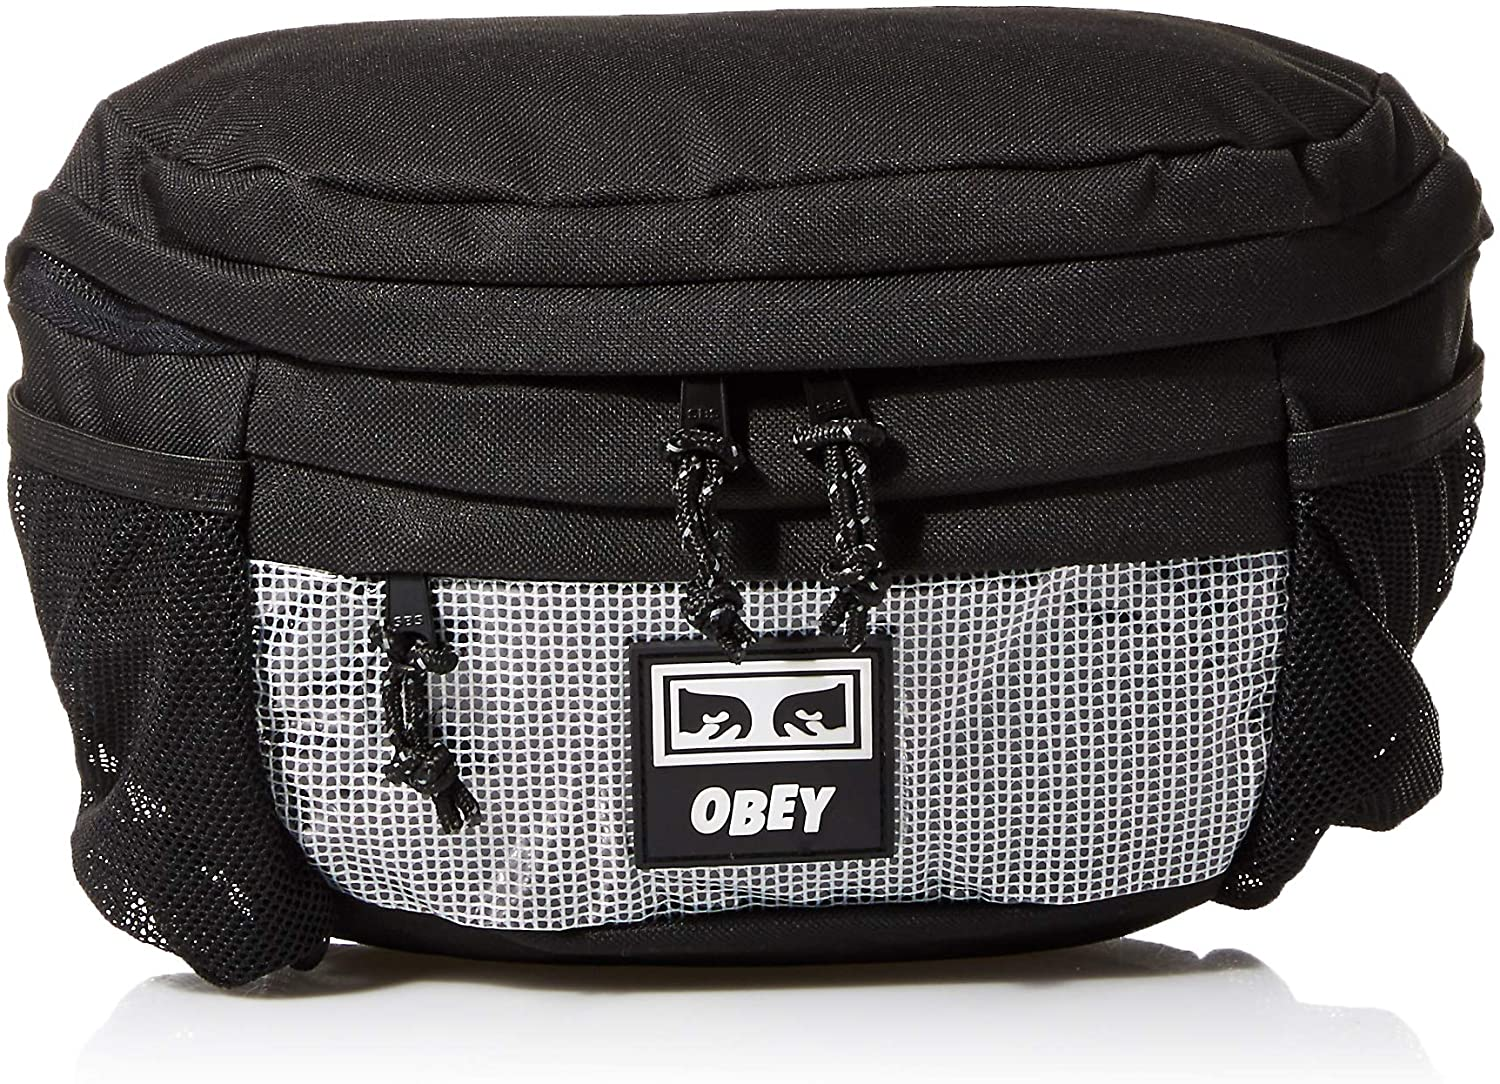 OBEY Men's Conditions Waist Bag II, black, One Size